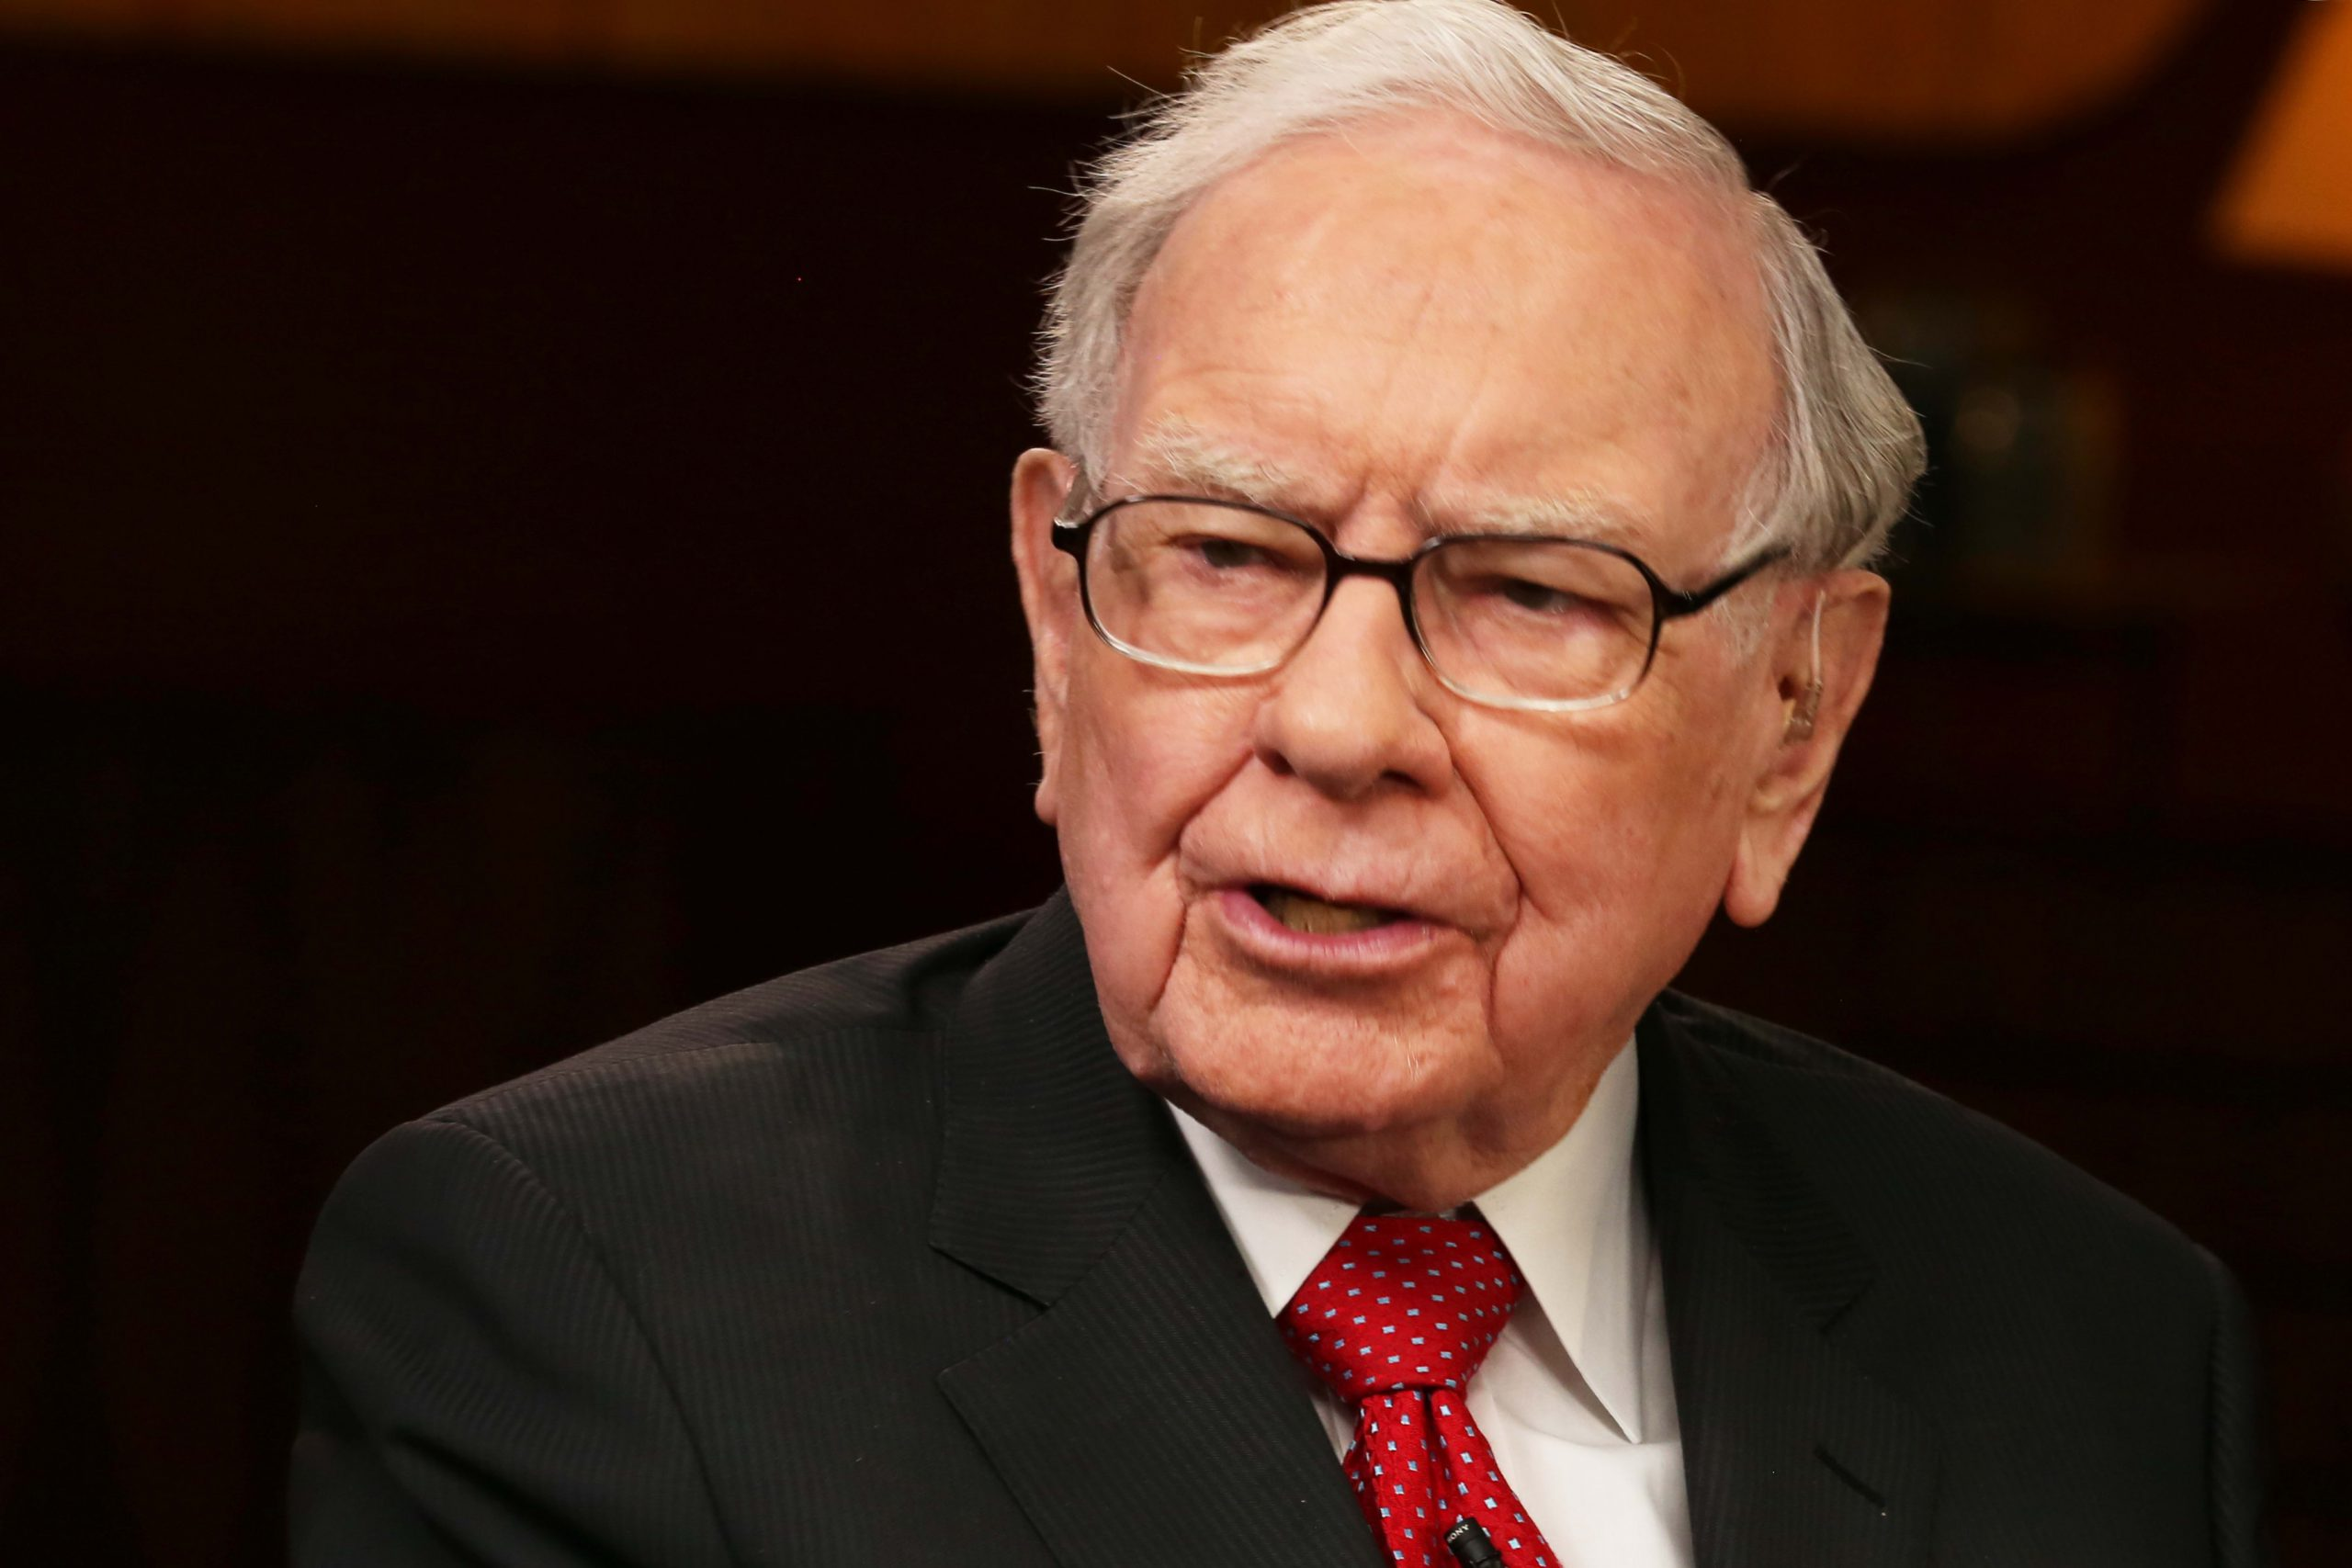 Warren Buffett speaks, Shake Shack earnings, Nevada caucus reaction: 3 things to watch for Monday